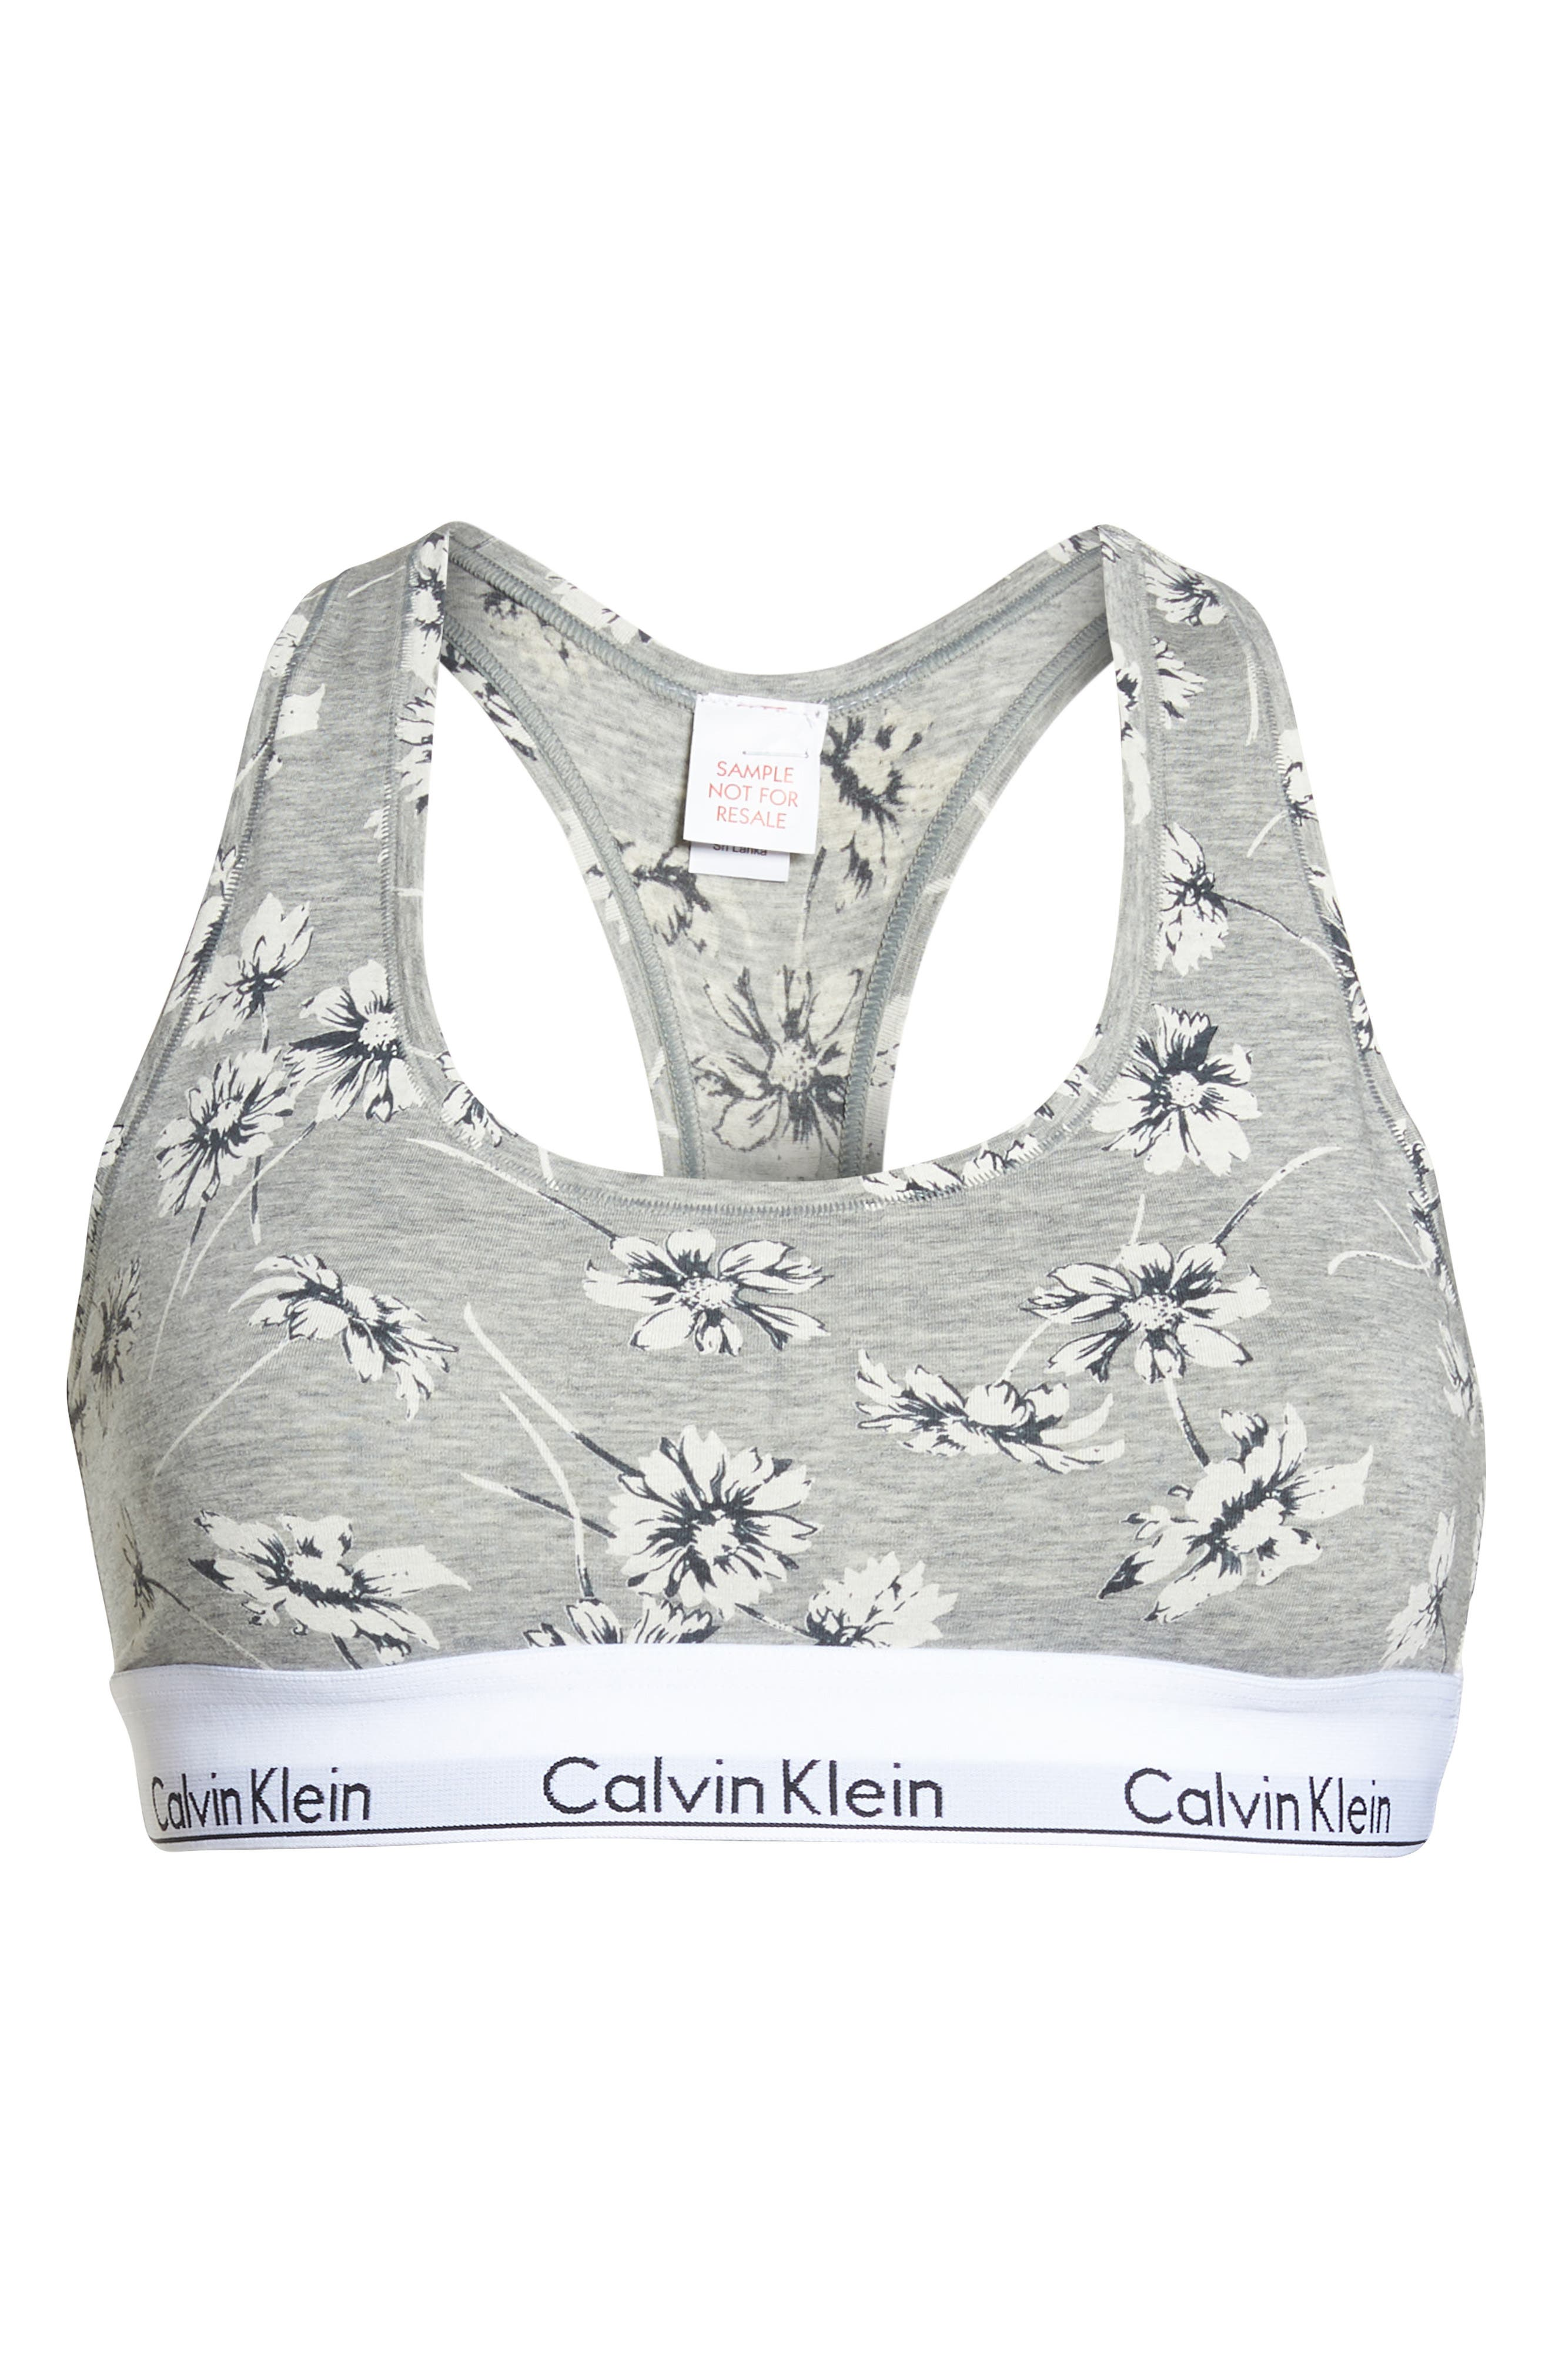 Modern Cotton Collection Cotton Blend Racerback Bralette,                             Alternate thumbnail 8, color,                             Scattered Posy Grey Htr